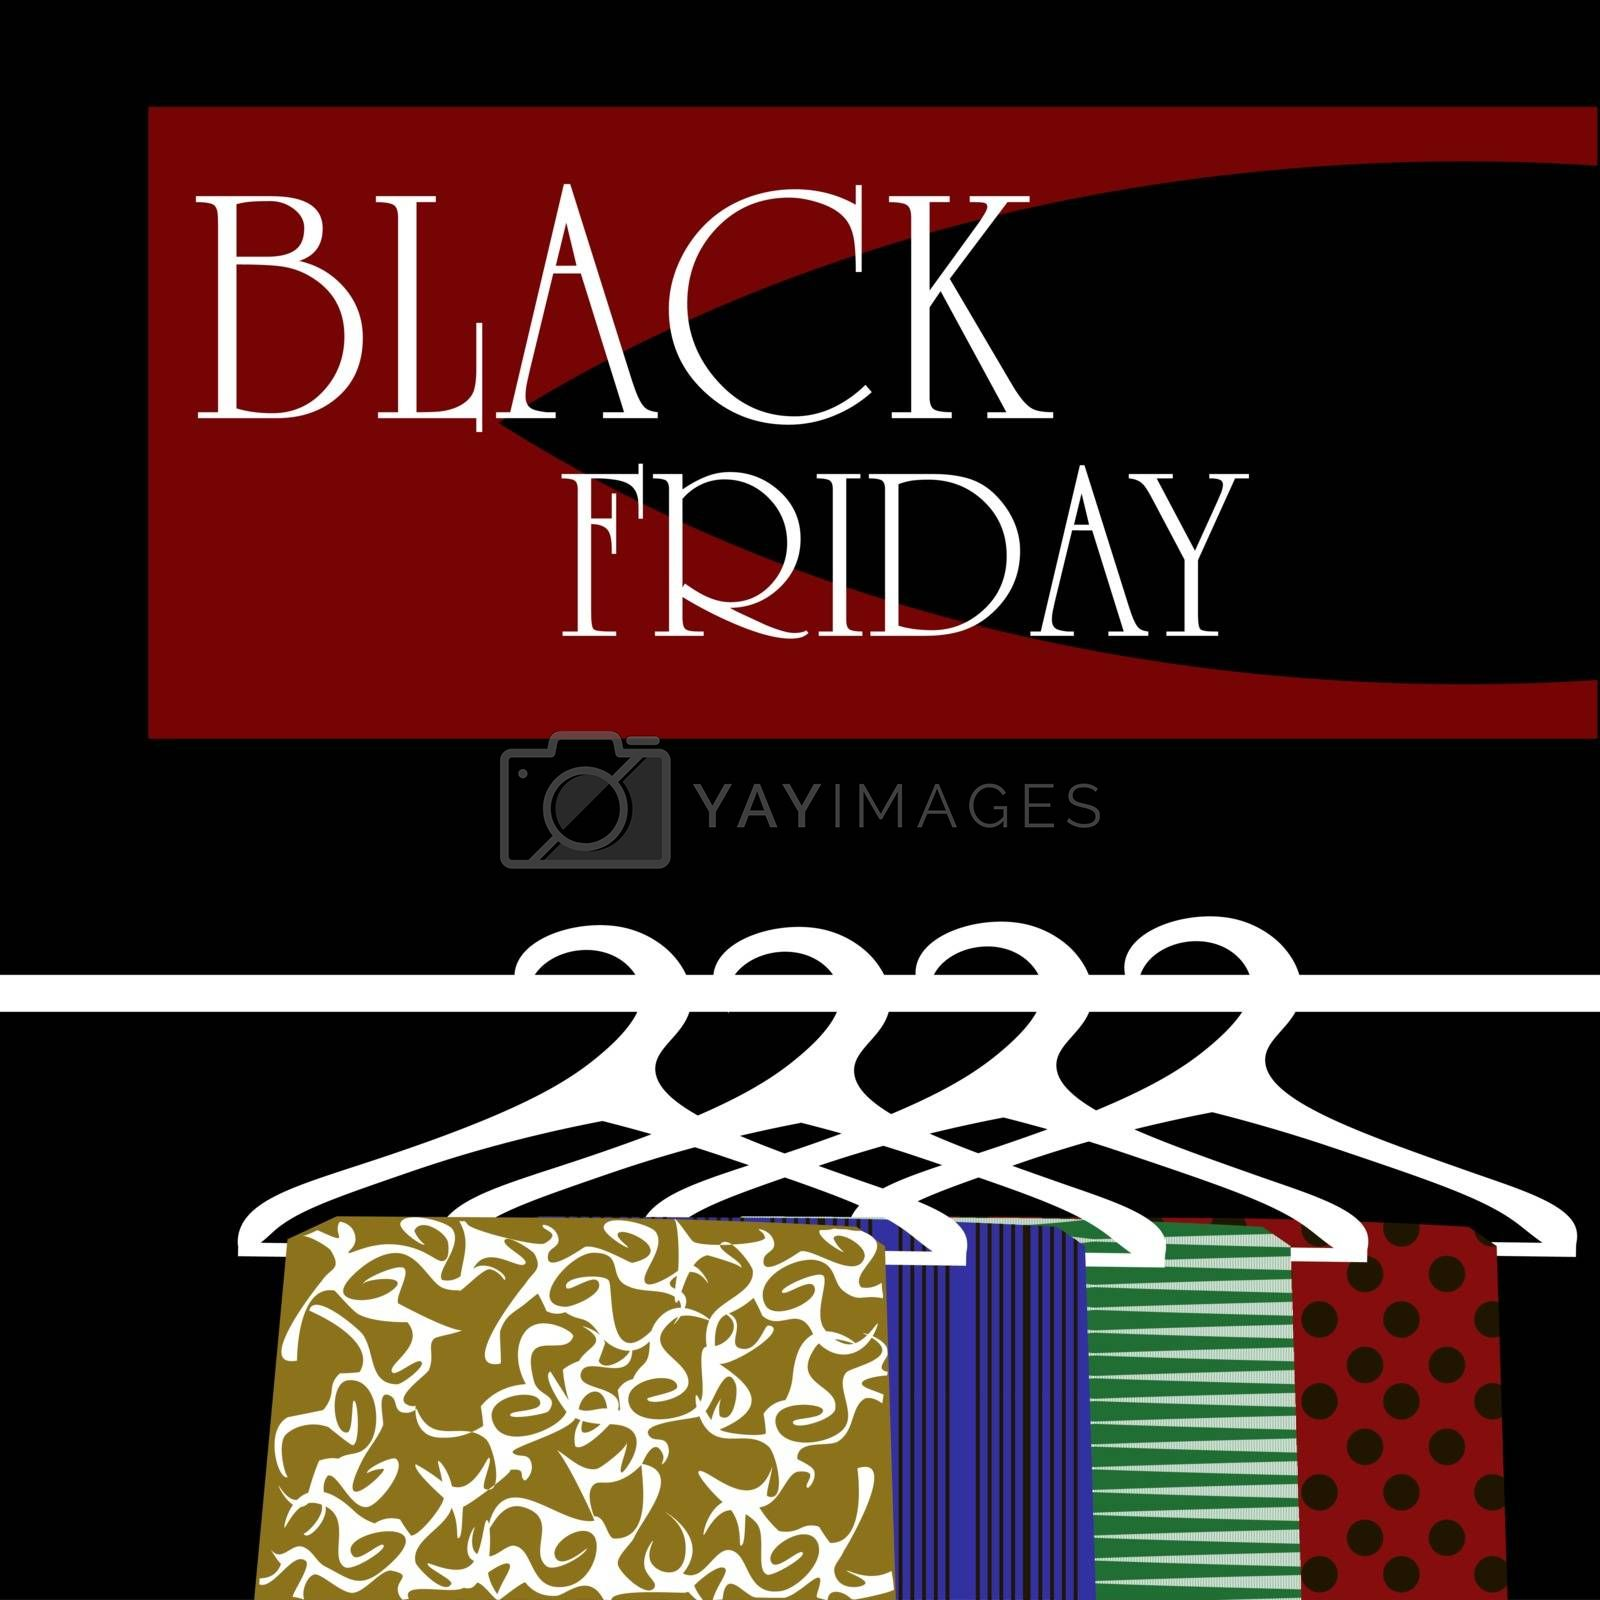 Black friday illustration with four clothes hangers on dark background